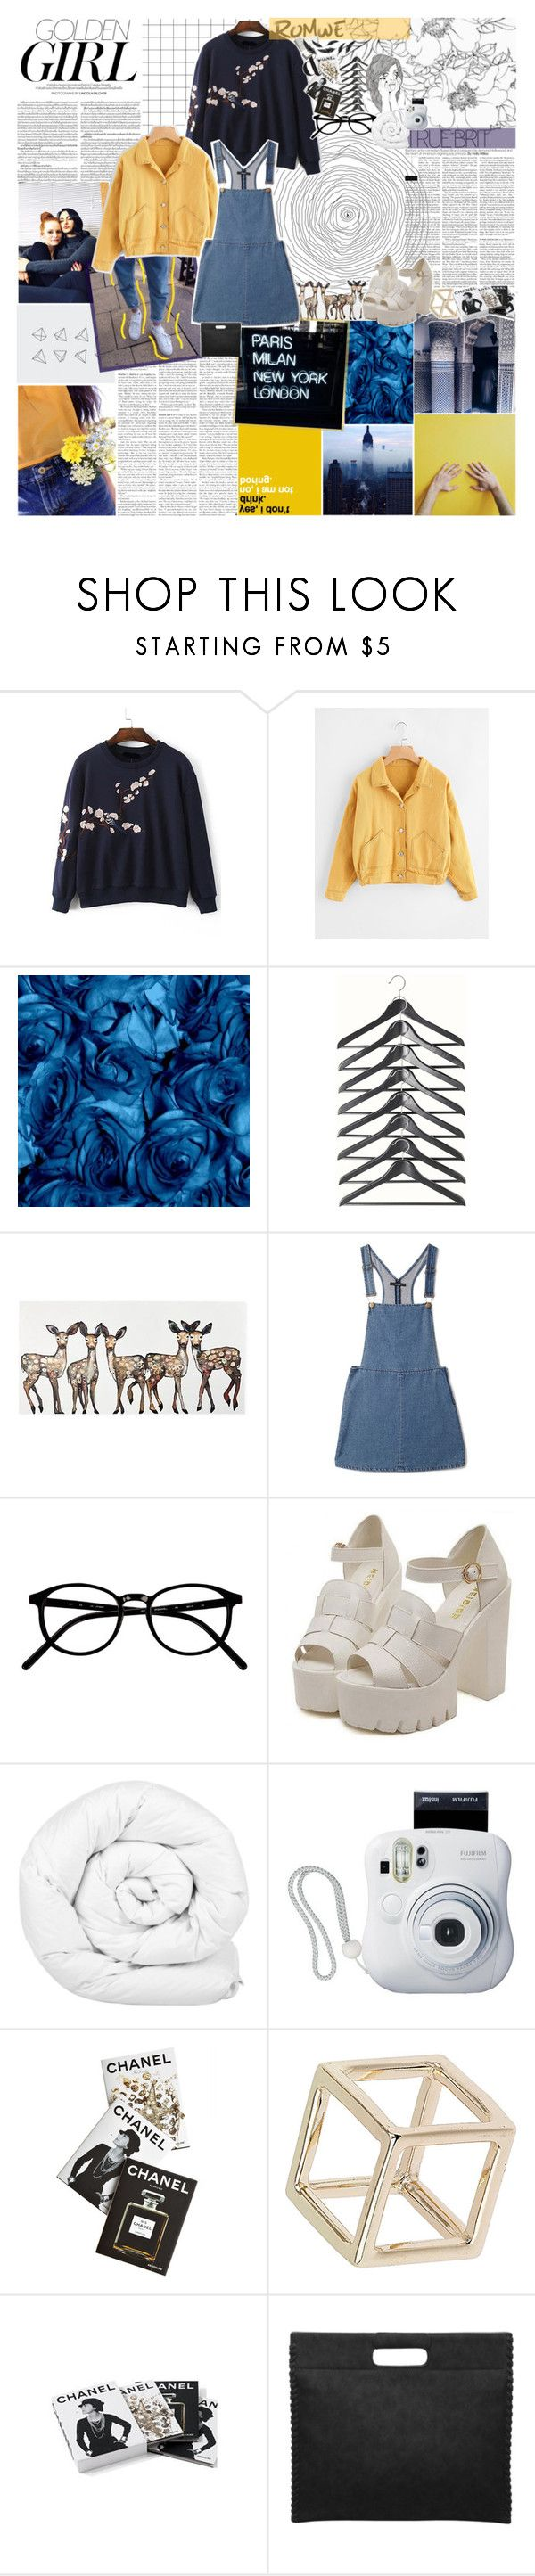 """HAPPY BIRTHDAY TO AN AMAZING PERSON ♡"" by embrxce ❤ liked on Polyvore featuring Murphy, Fila, WALL, Forever 21, Brinkhaus, Fujifilm, Assouline Publishing, Topshop and Chanel"